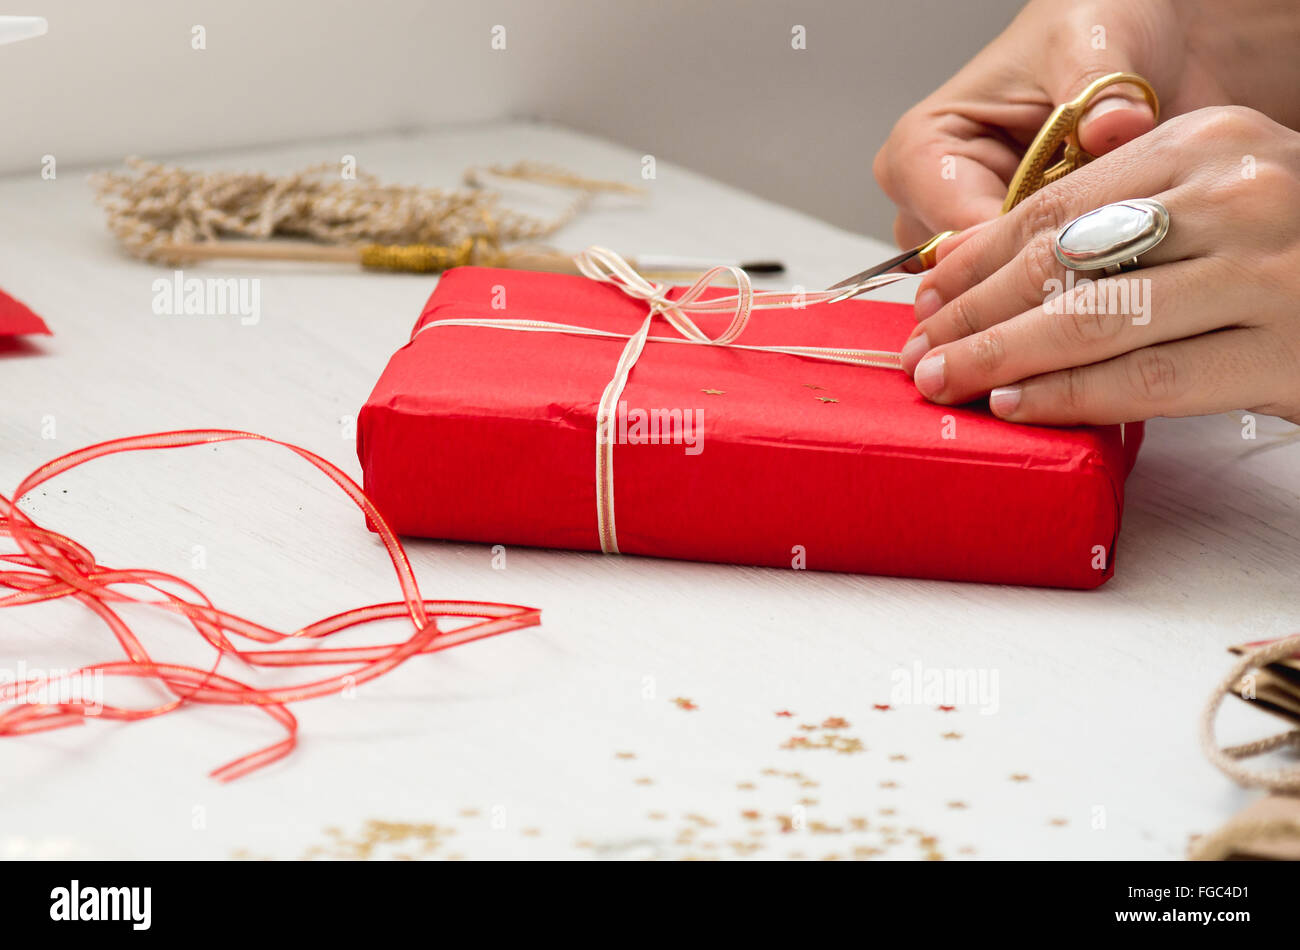 Cropped Image Of Hand Cutting Ribbon On Gift At Table - Stock Image